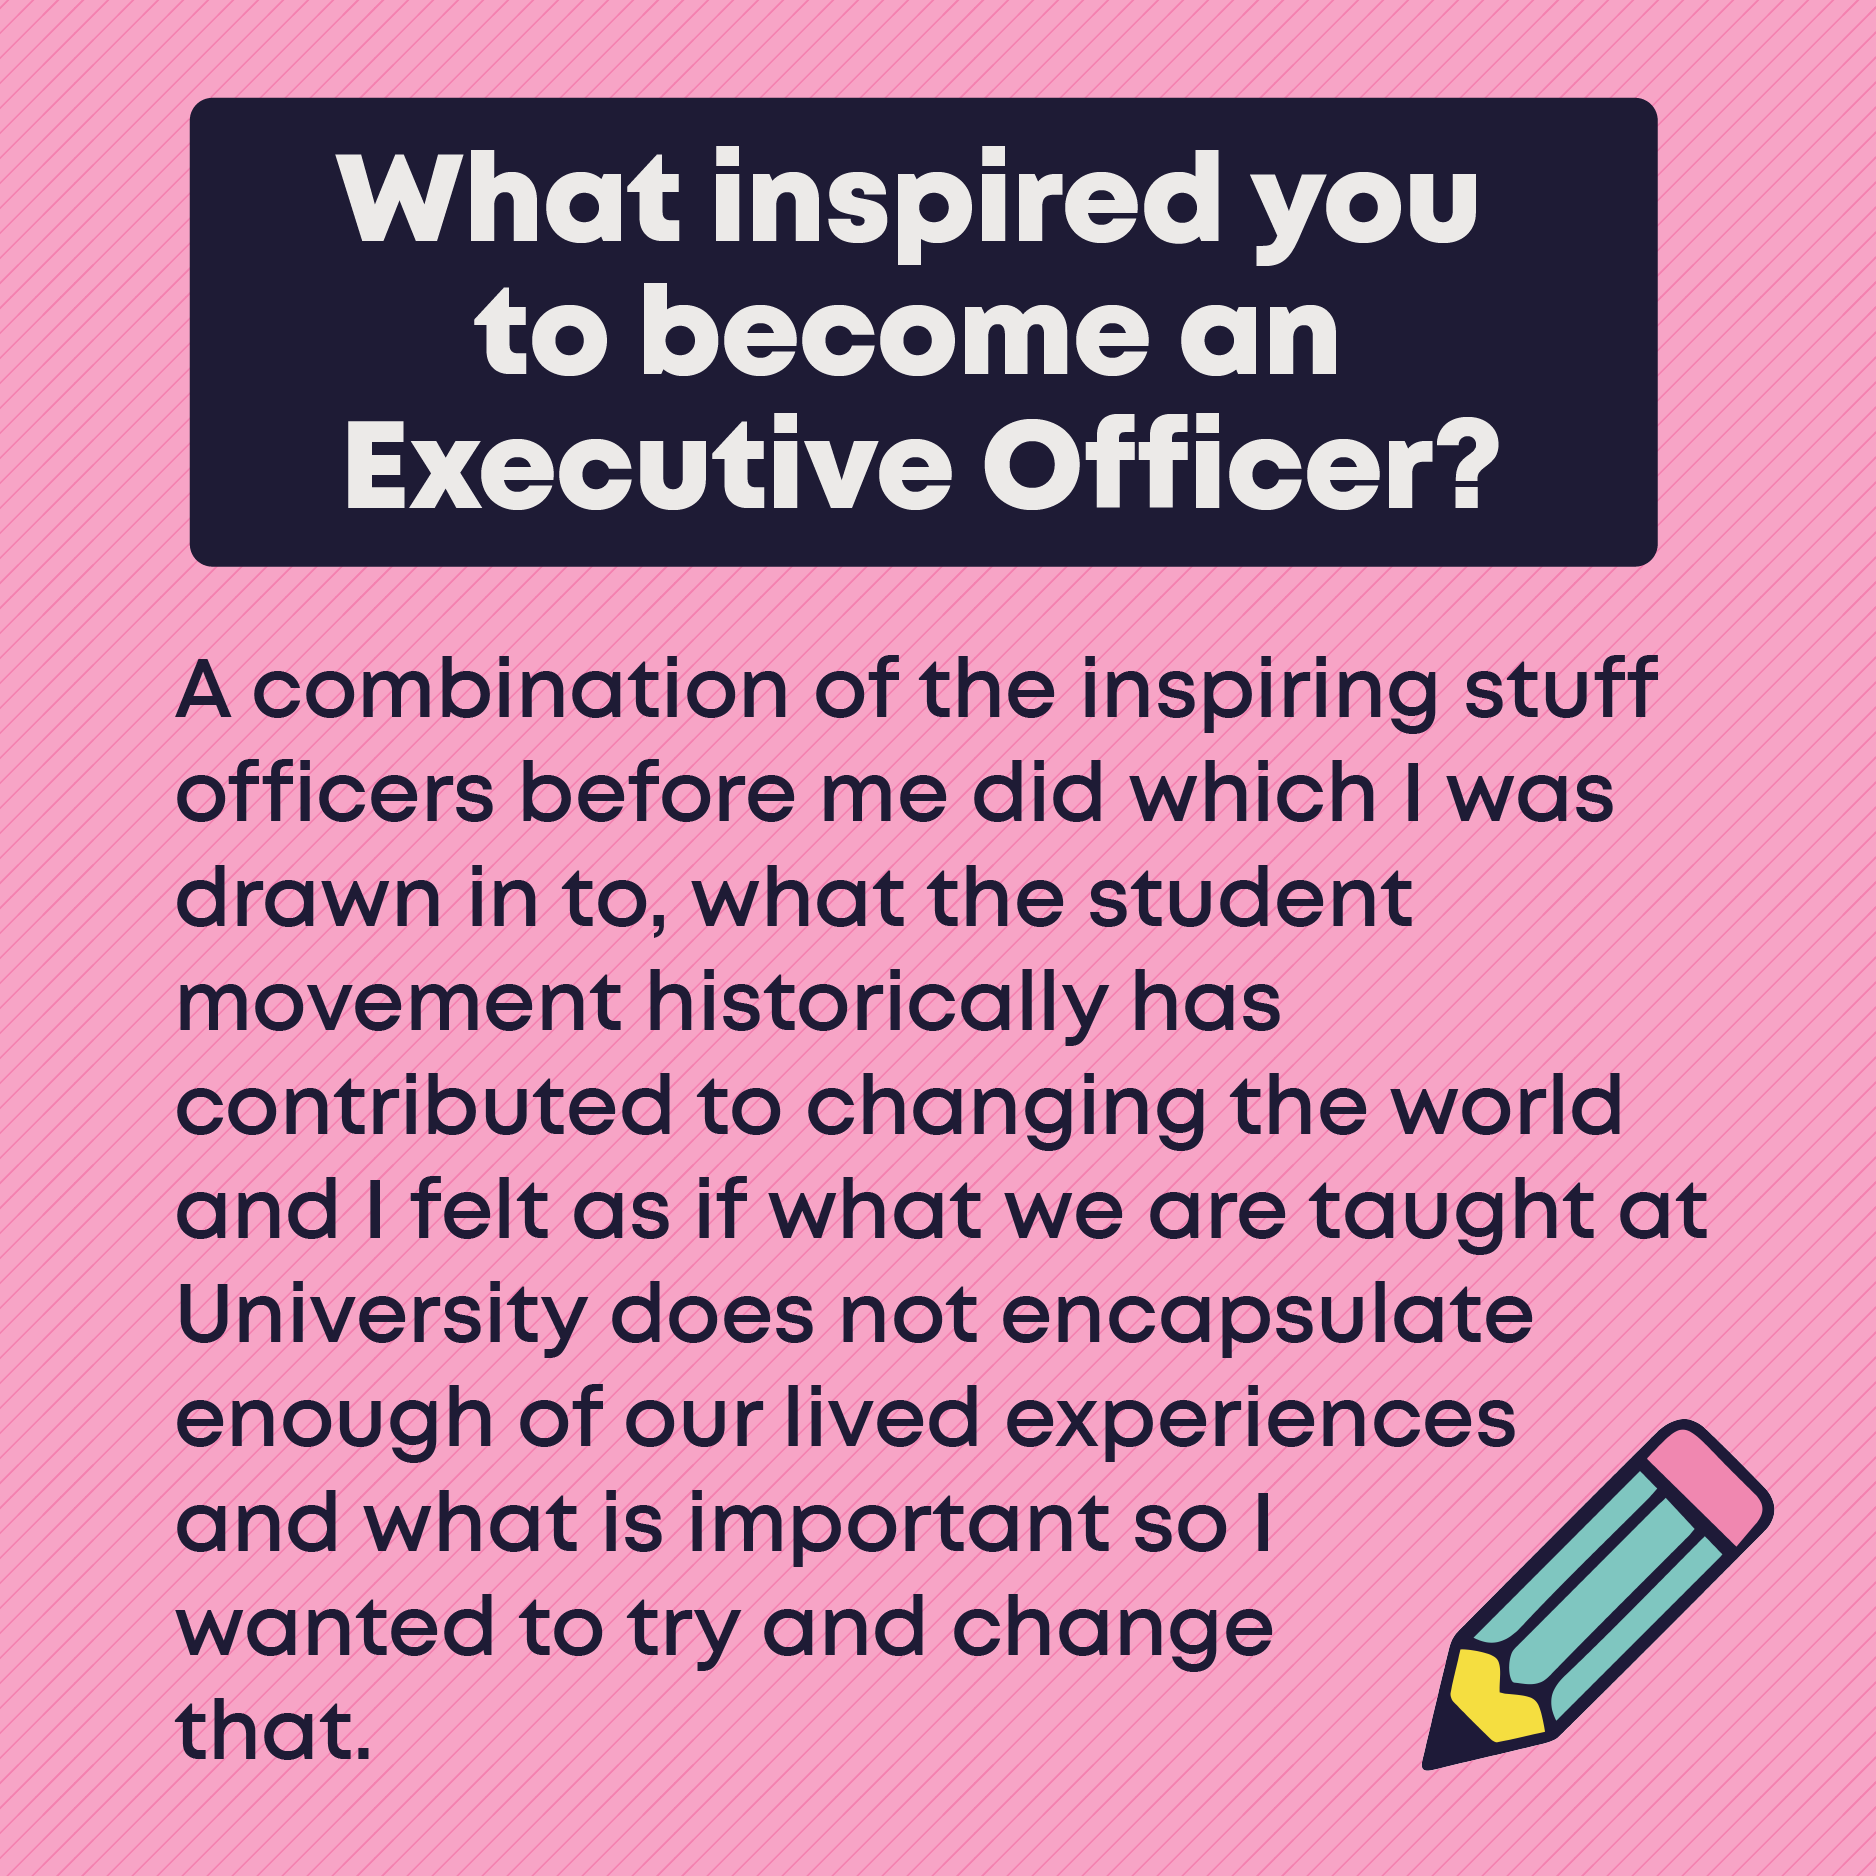 What inspired you to become an Executive Officer? A combination of the inspiring stuff officers before me did which I was drawn in to, what the student movement historically has contributed to changing the world and I felt as if what we are taught at University does not encapsulate enough of our lived experiences and what is important so I wanted to try and change that. I'm quite approachable and like talking to people so I would like to think that students can see me as someone they can relate to and talk to. But I am also very passionate about what I do and am determined to ensure that in this coming year, students are at the forefront of all my campaigns and plans.